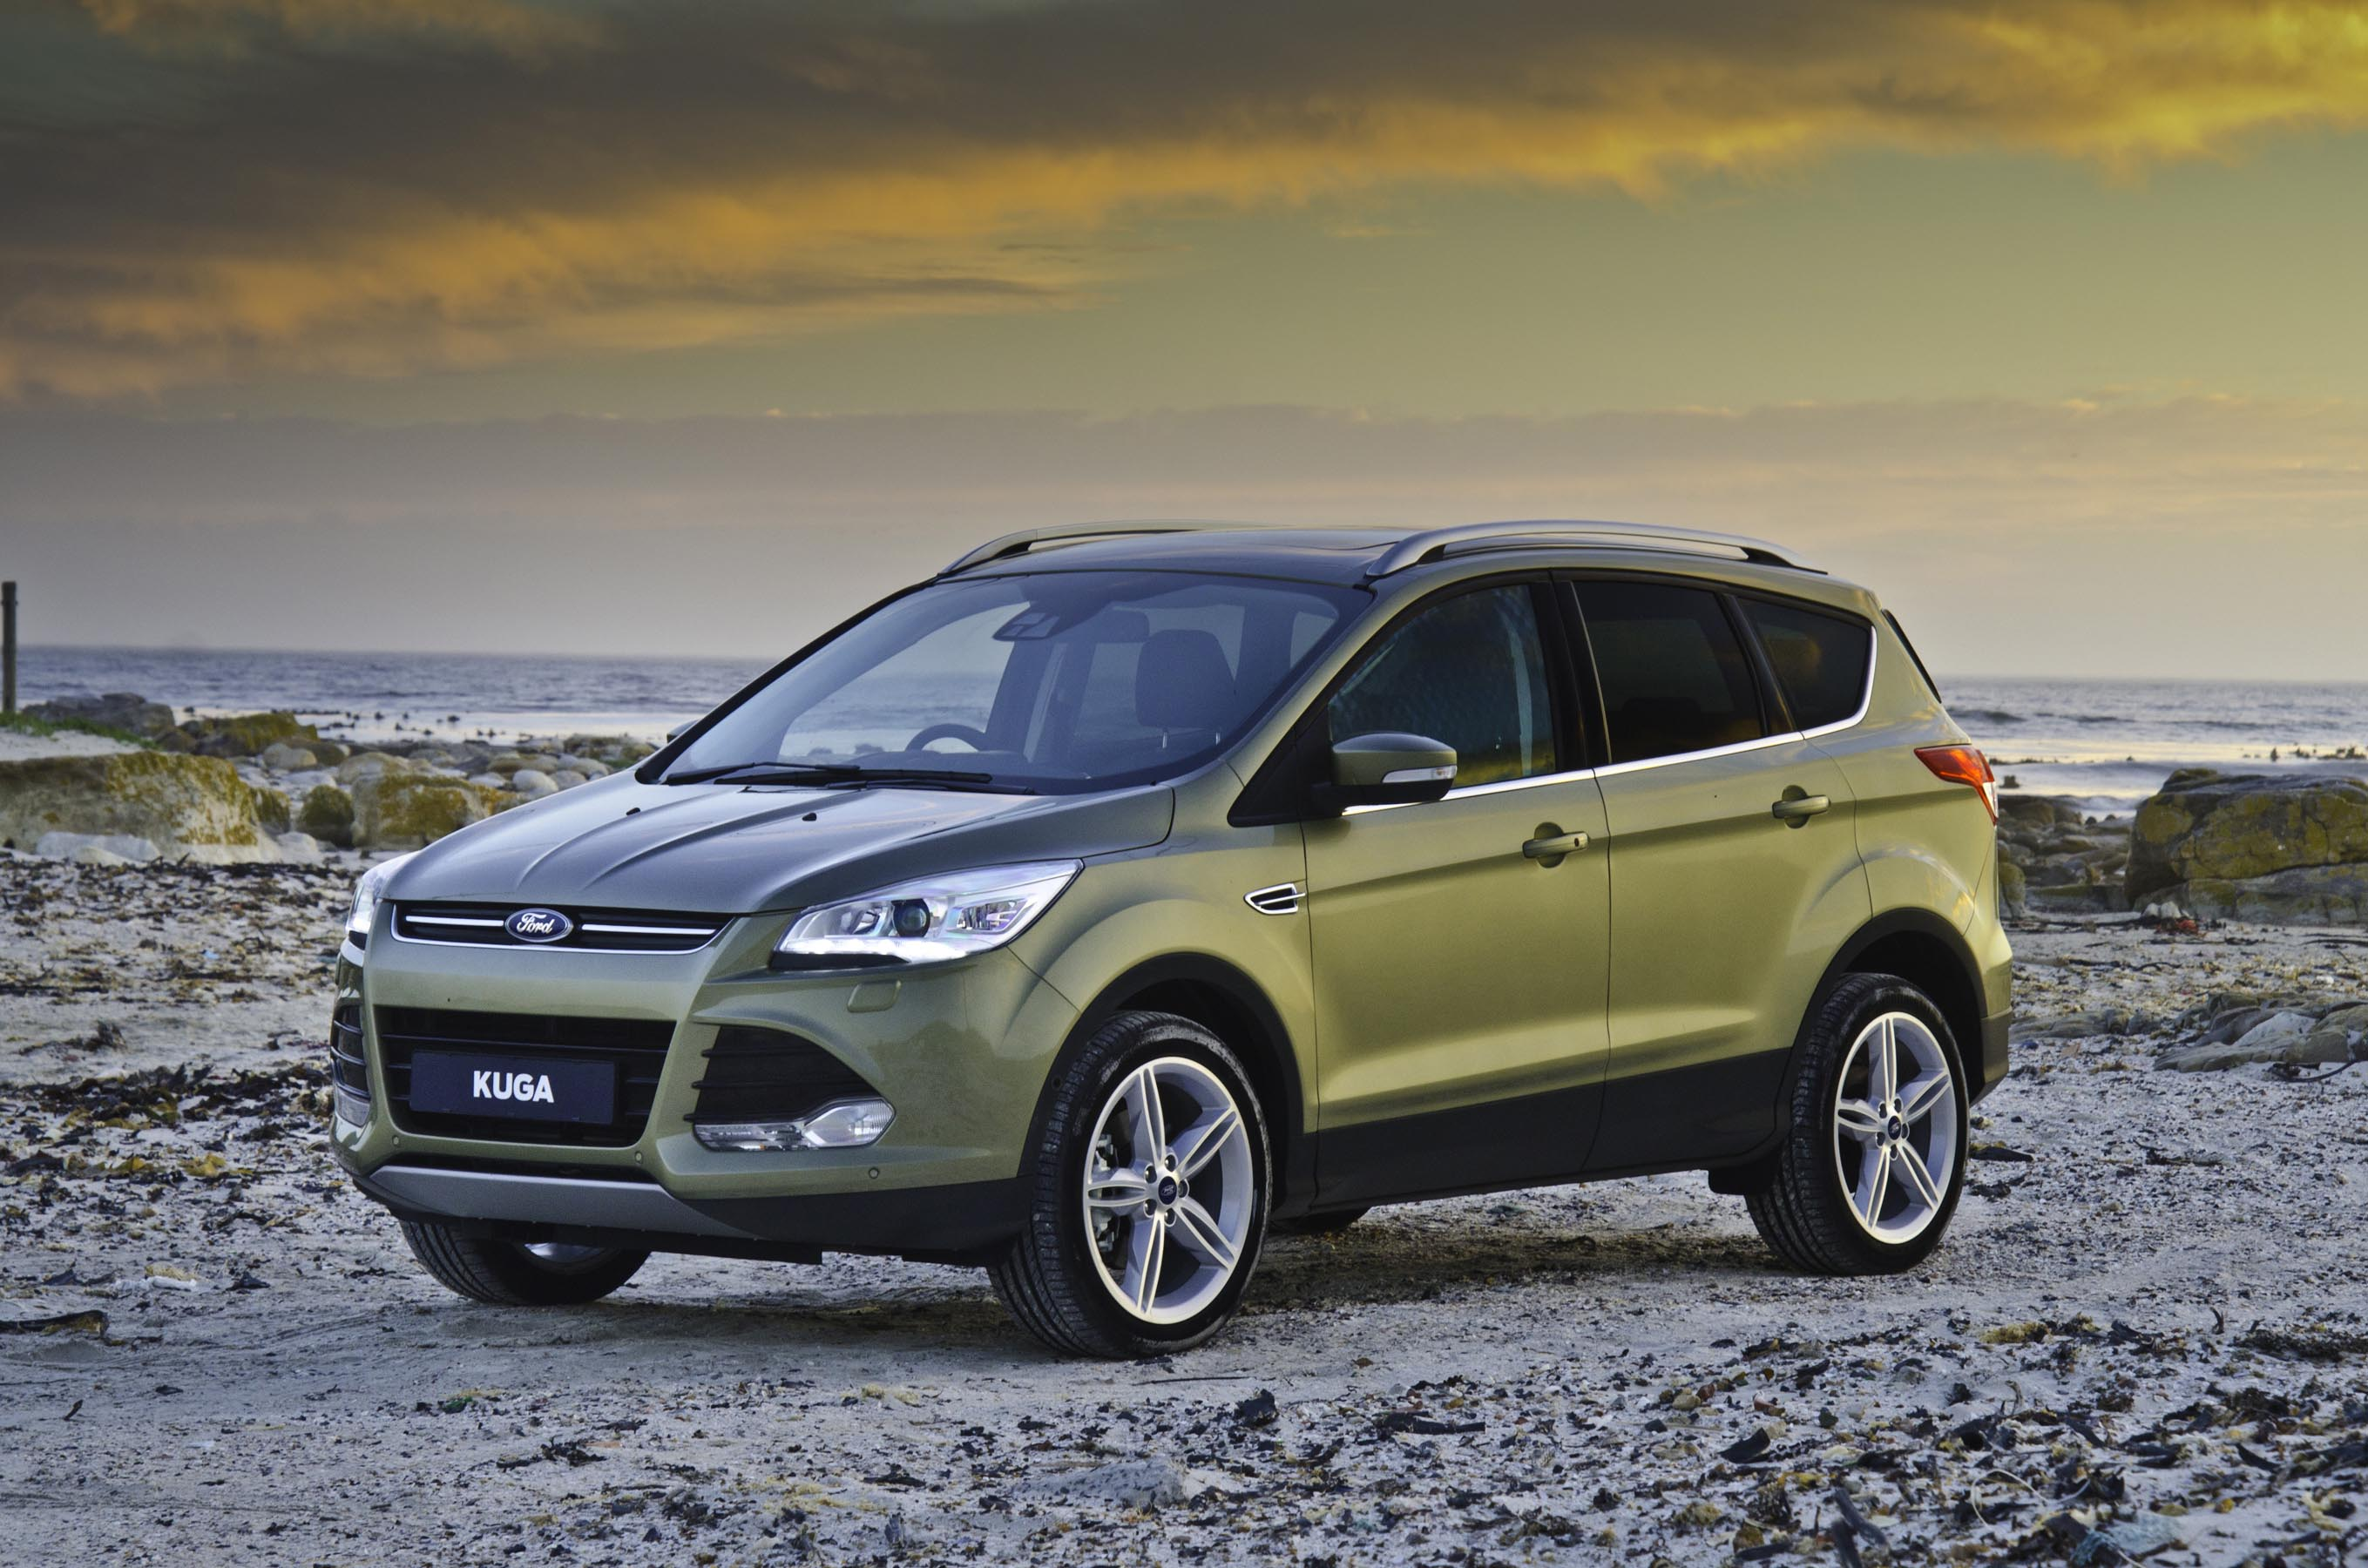 the new ford kuga voted the safest smallest off road 4x4 fashionjazz. Black Bedroom Furniture Sets. Home Design Ideas